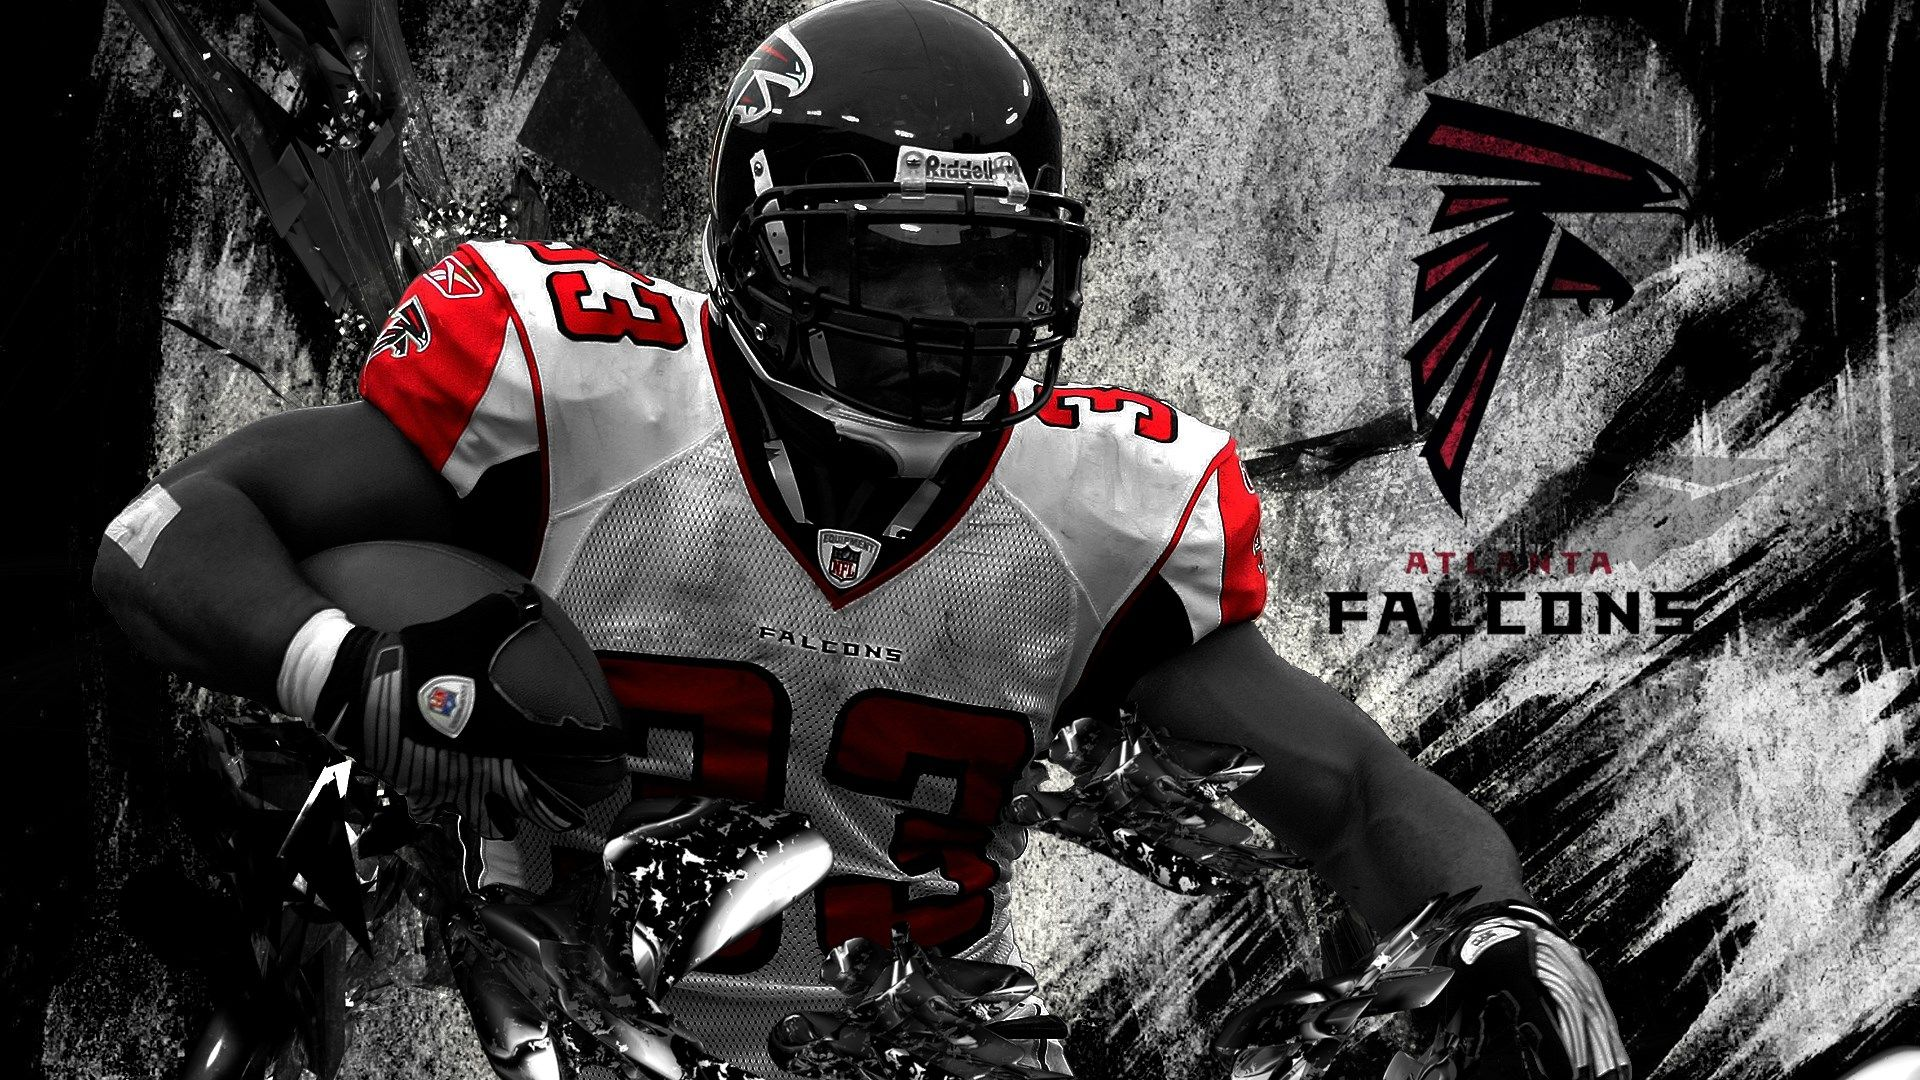 Atlanta falcons wallpapers hd ololoshenka pinterest falcons atlanta falcons wallpapers hd voltagebd Images